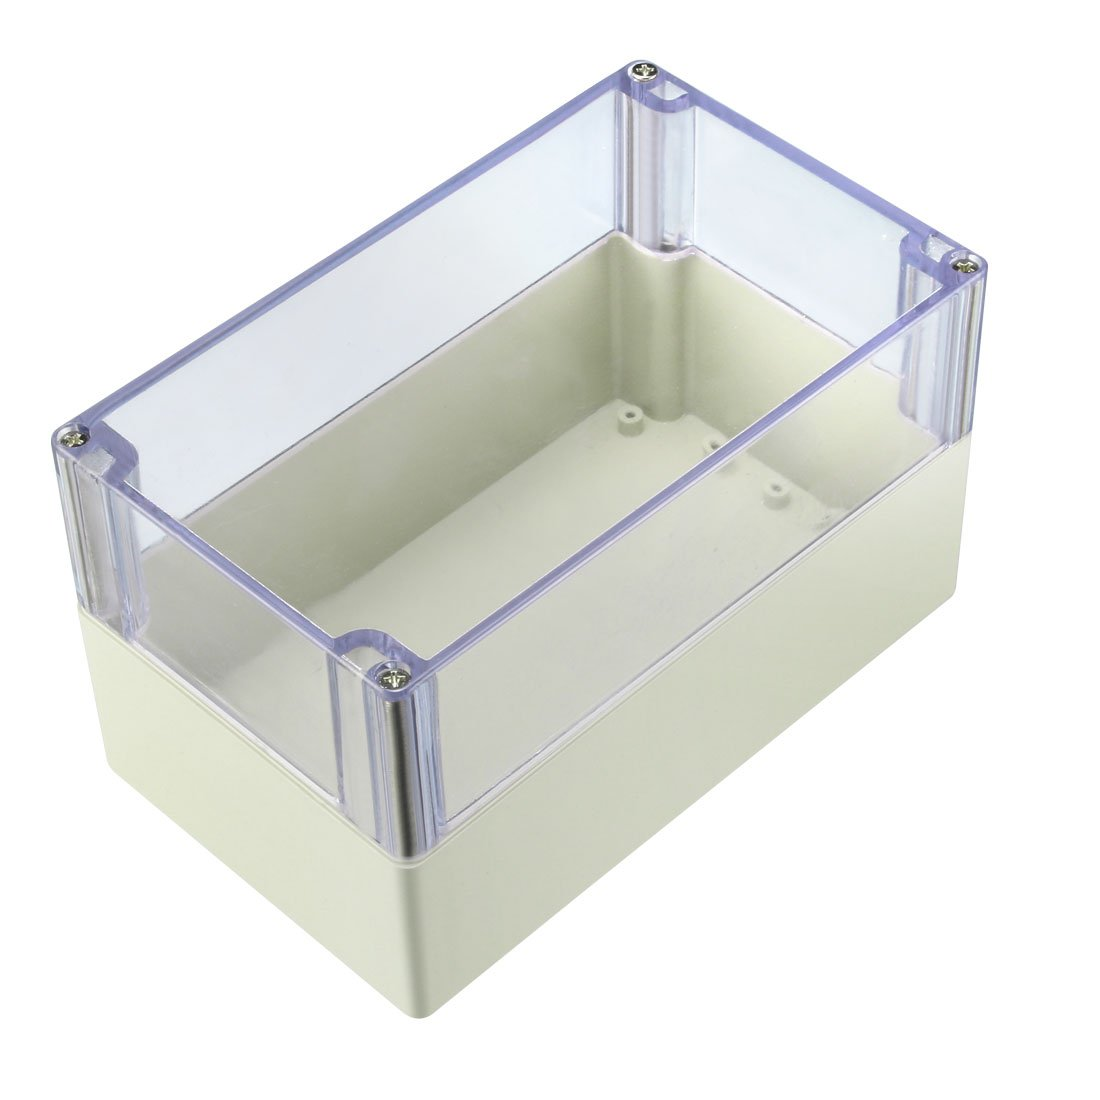 sourcing map 200 x 120 x 113mm Electronic ABS Plastic DIY Junction Box Enclosure Case w Clear Cover a18040600ux0154